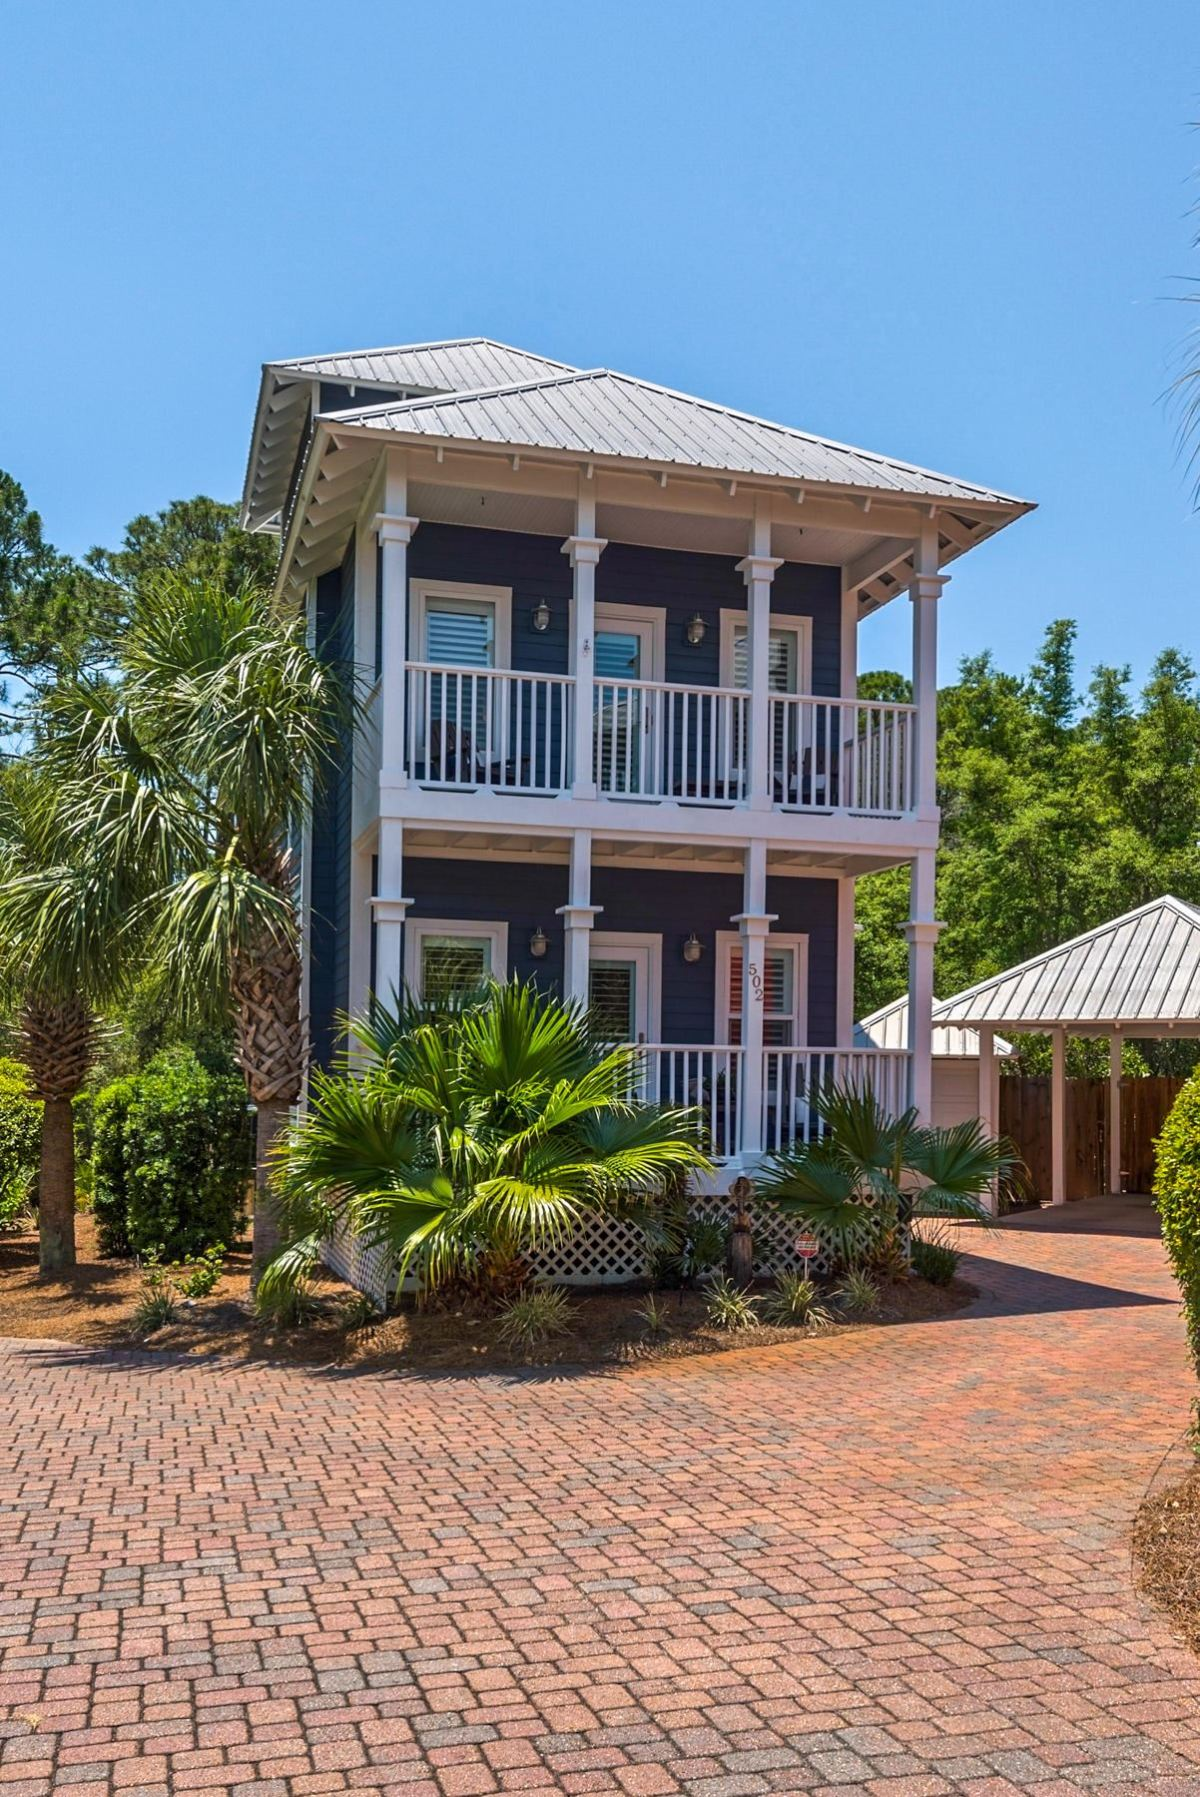 Photo of 502 Hidden Lake Way, Santa Rosa Beach, FL 32459 (MLS # 847363)